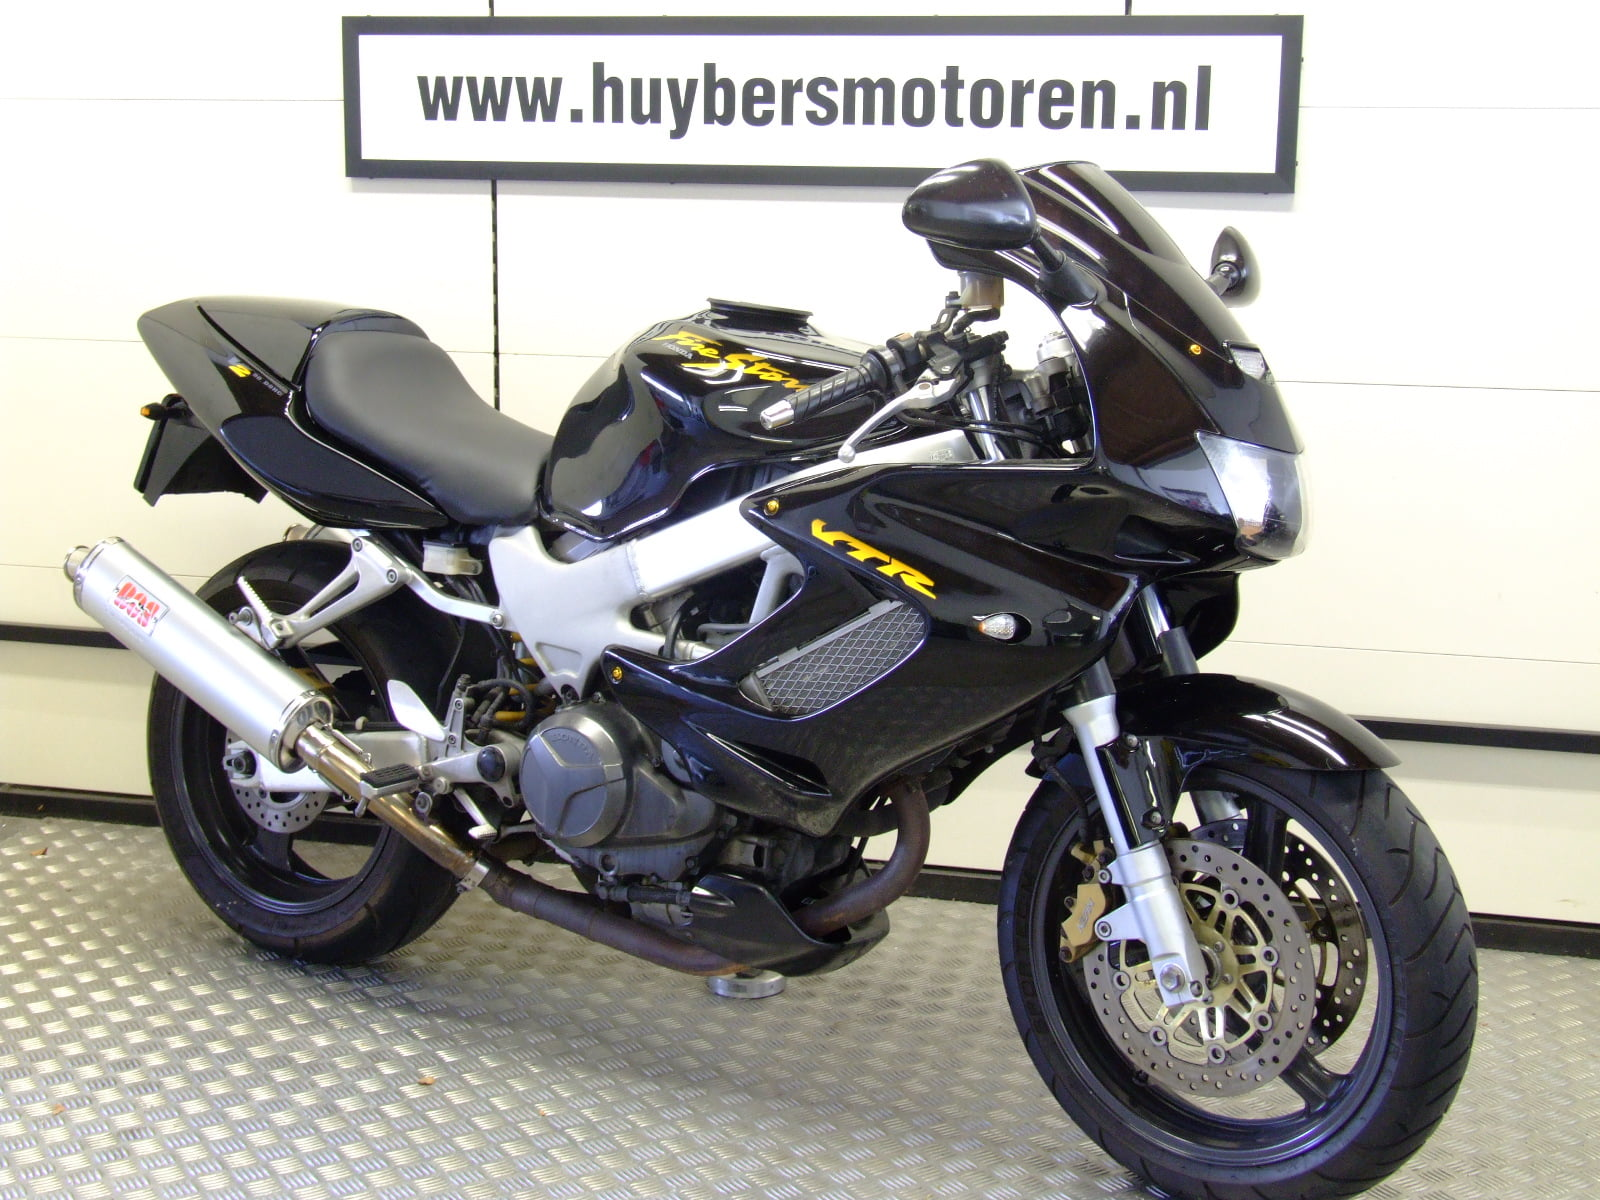 HONDA VTR 1000 FIRESTORM (LAST OWNER 6 YEARS, SPORTS CANS